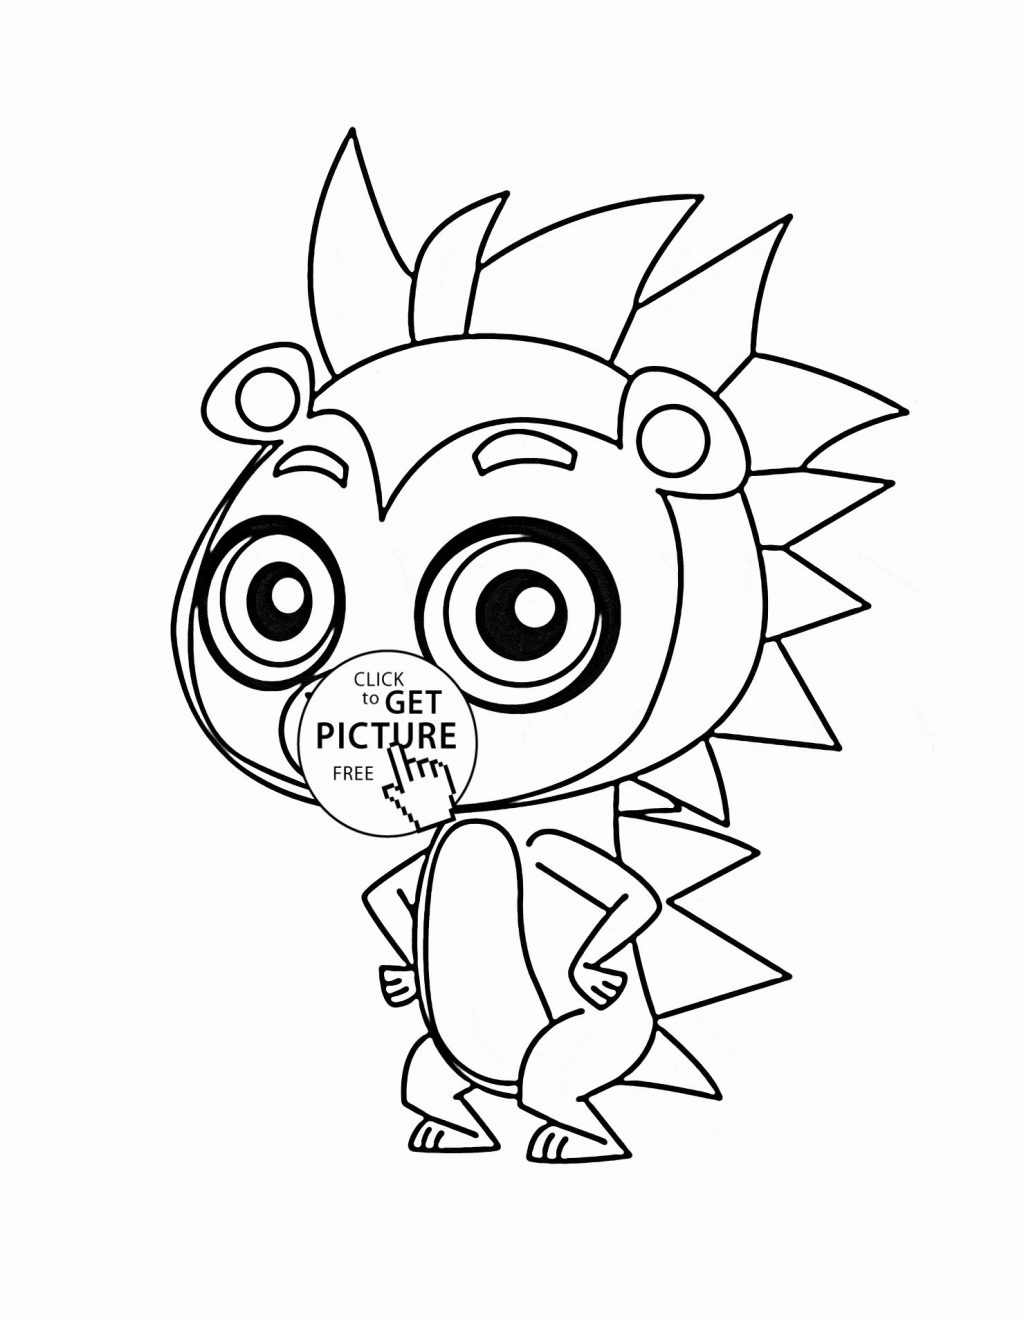 Coloring Pages To Color Online For Free Coloring Pages Boss Ba Coloring Pages Awesome Games Fresh Free